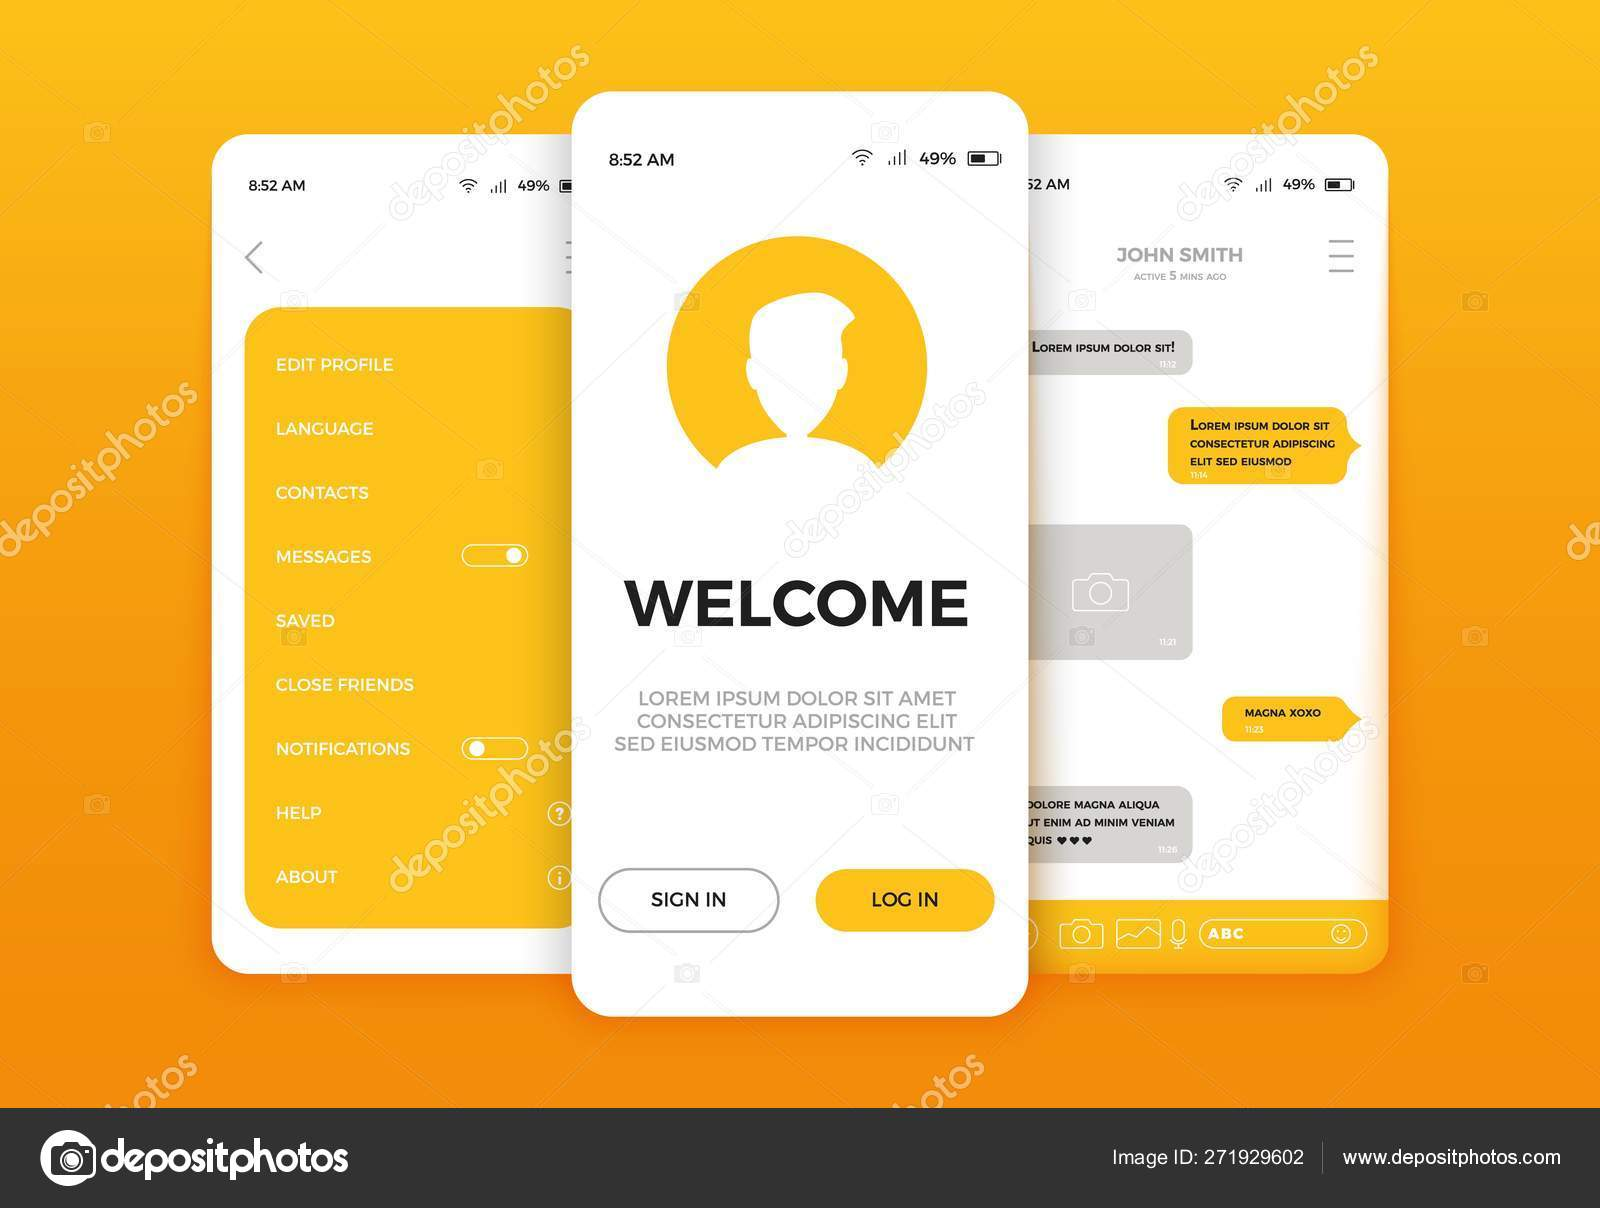 Mobile App User Interface Screen Design Mobile Ui Kit With Welcome Window Registration Home Page Concept